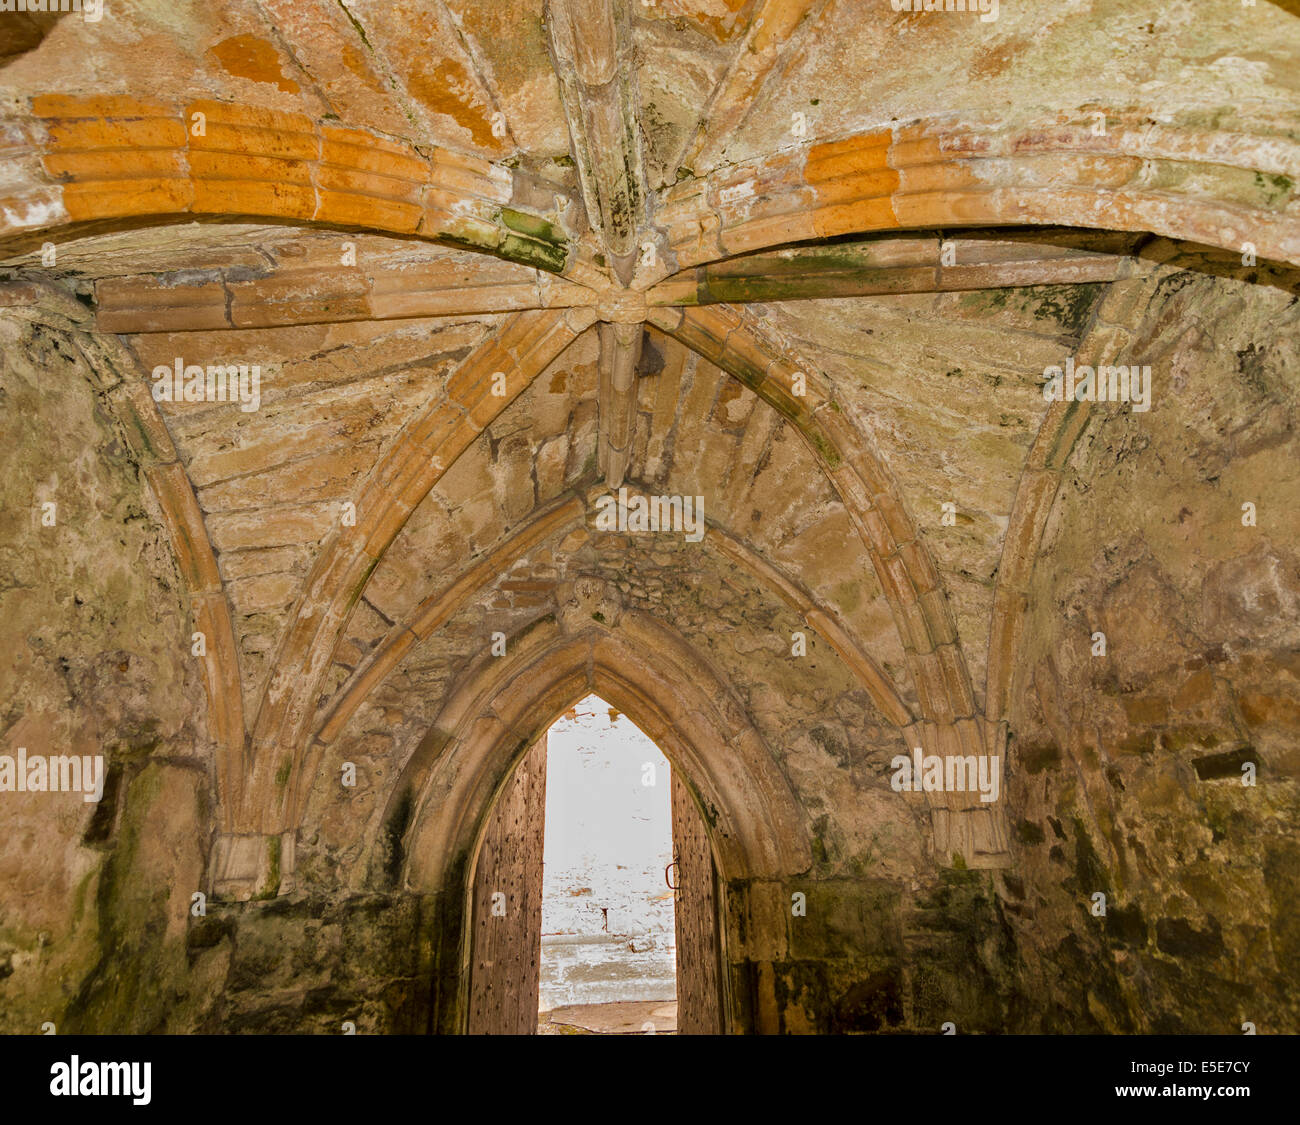 ST.PETER'S KIRK OR CHURCH DUFFUS MORAY INTERIOR VAULTING OF THE PORCH - Stock Image